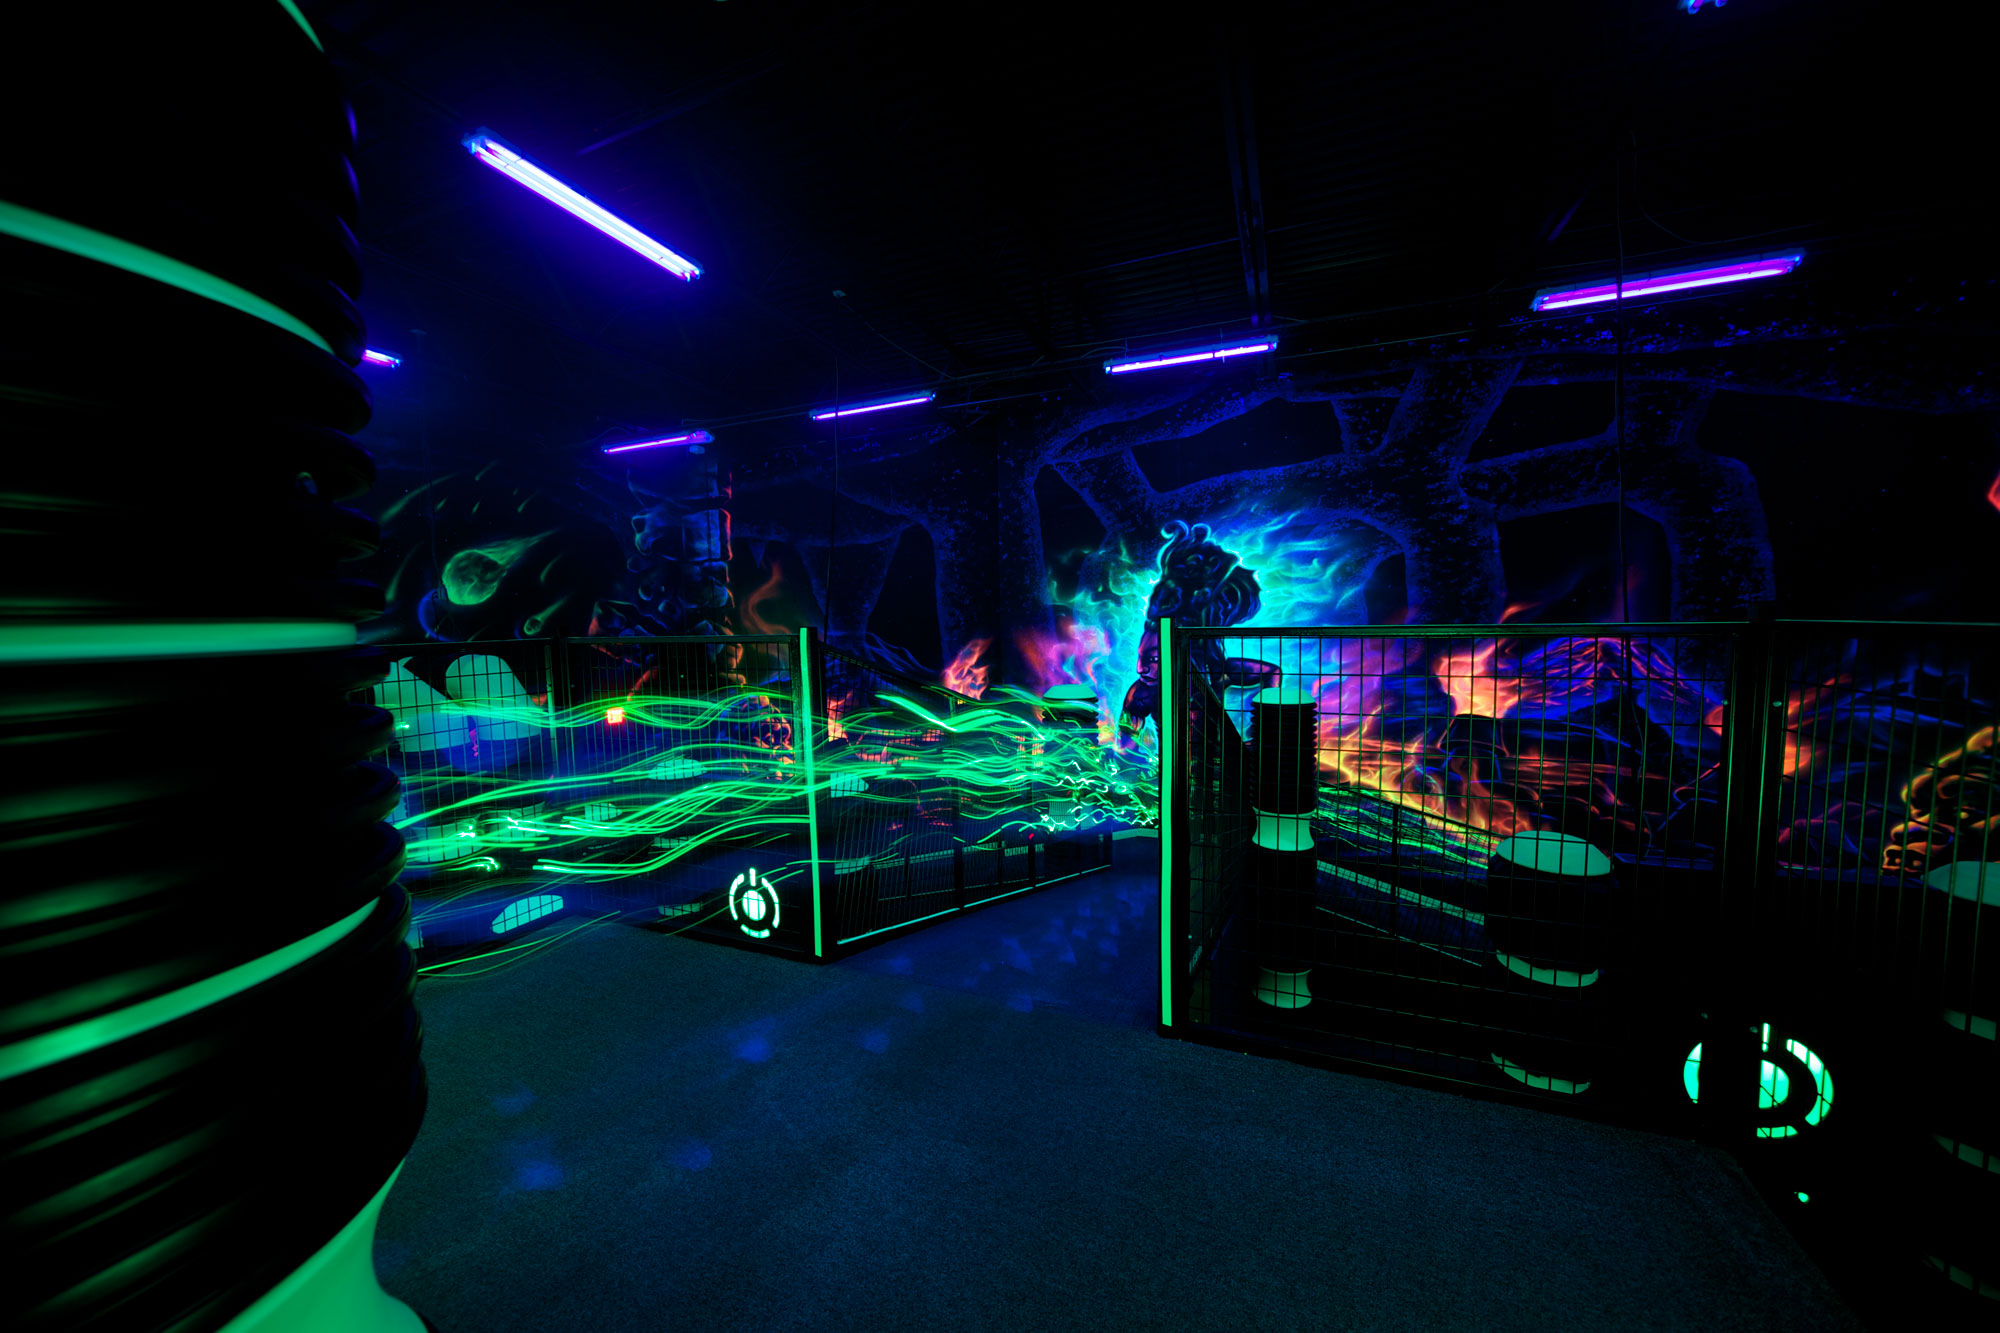 Heyday laser tag arena